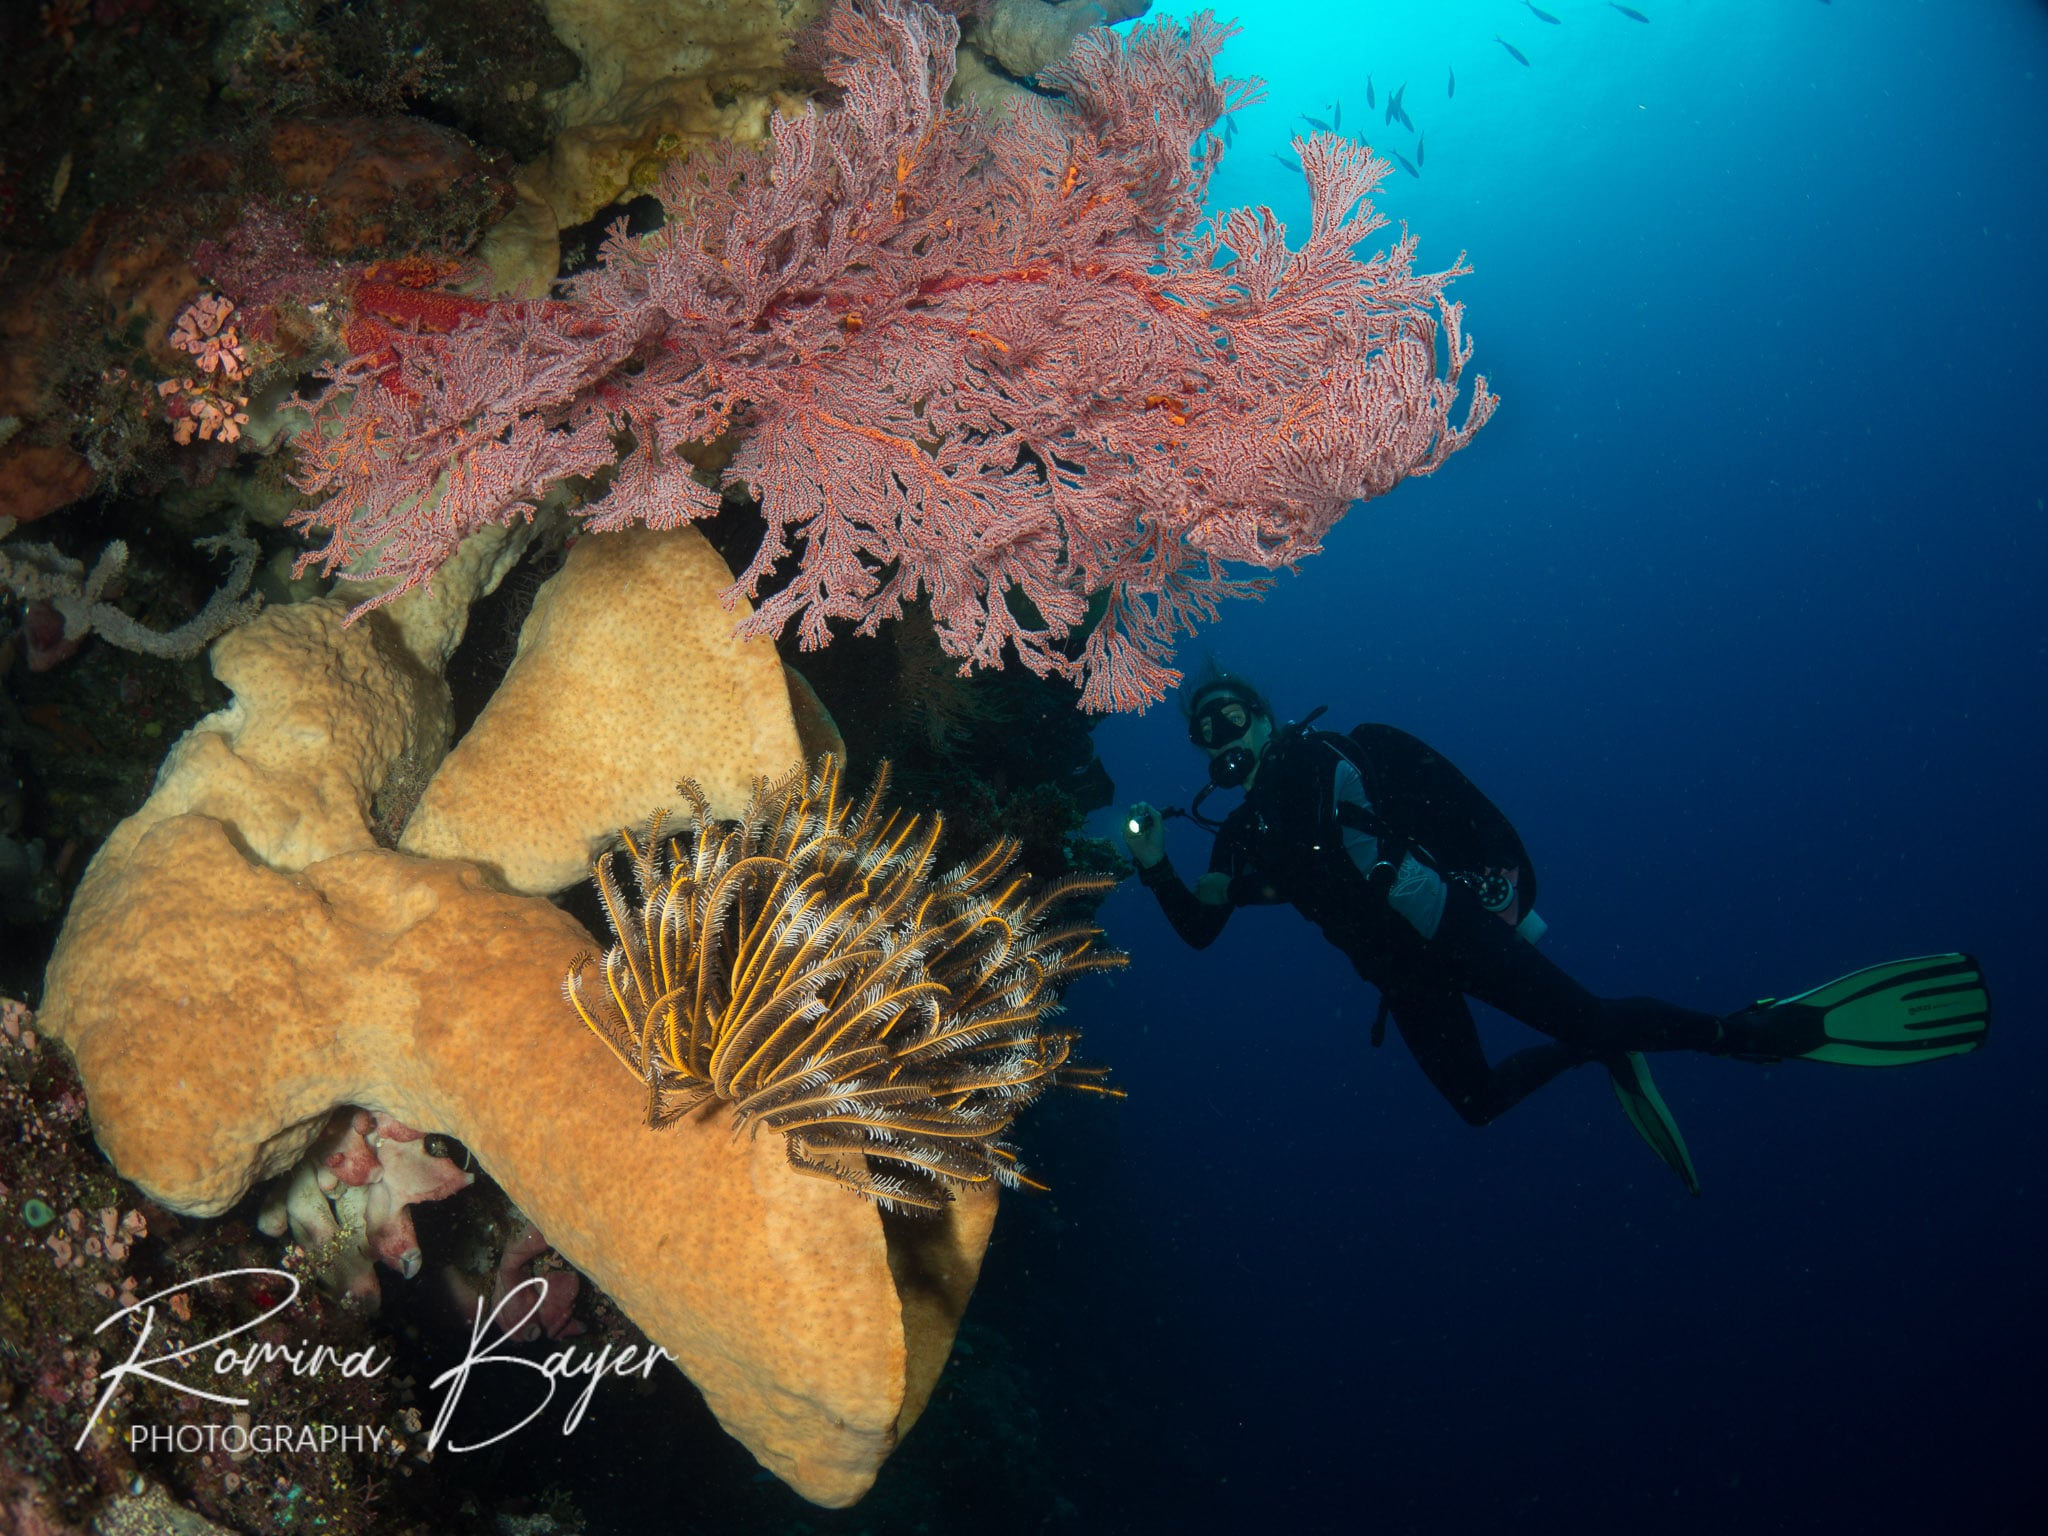 Diver and colorful coral in Bunaken Marine Park, Indonesia